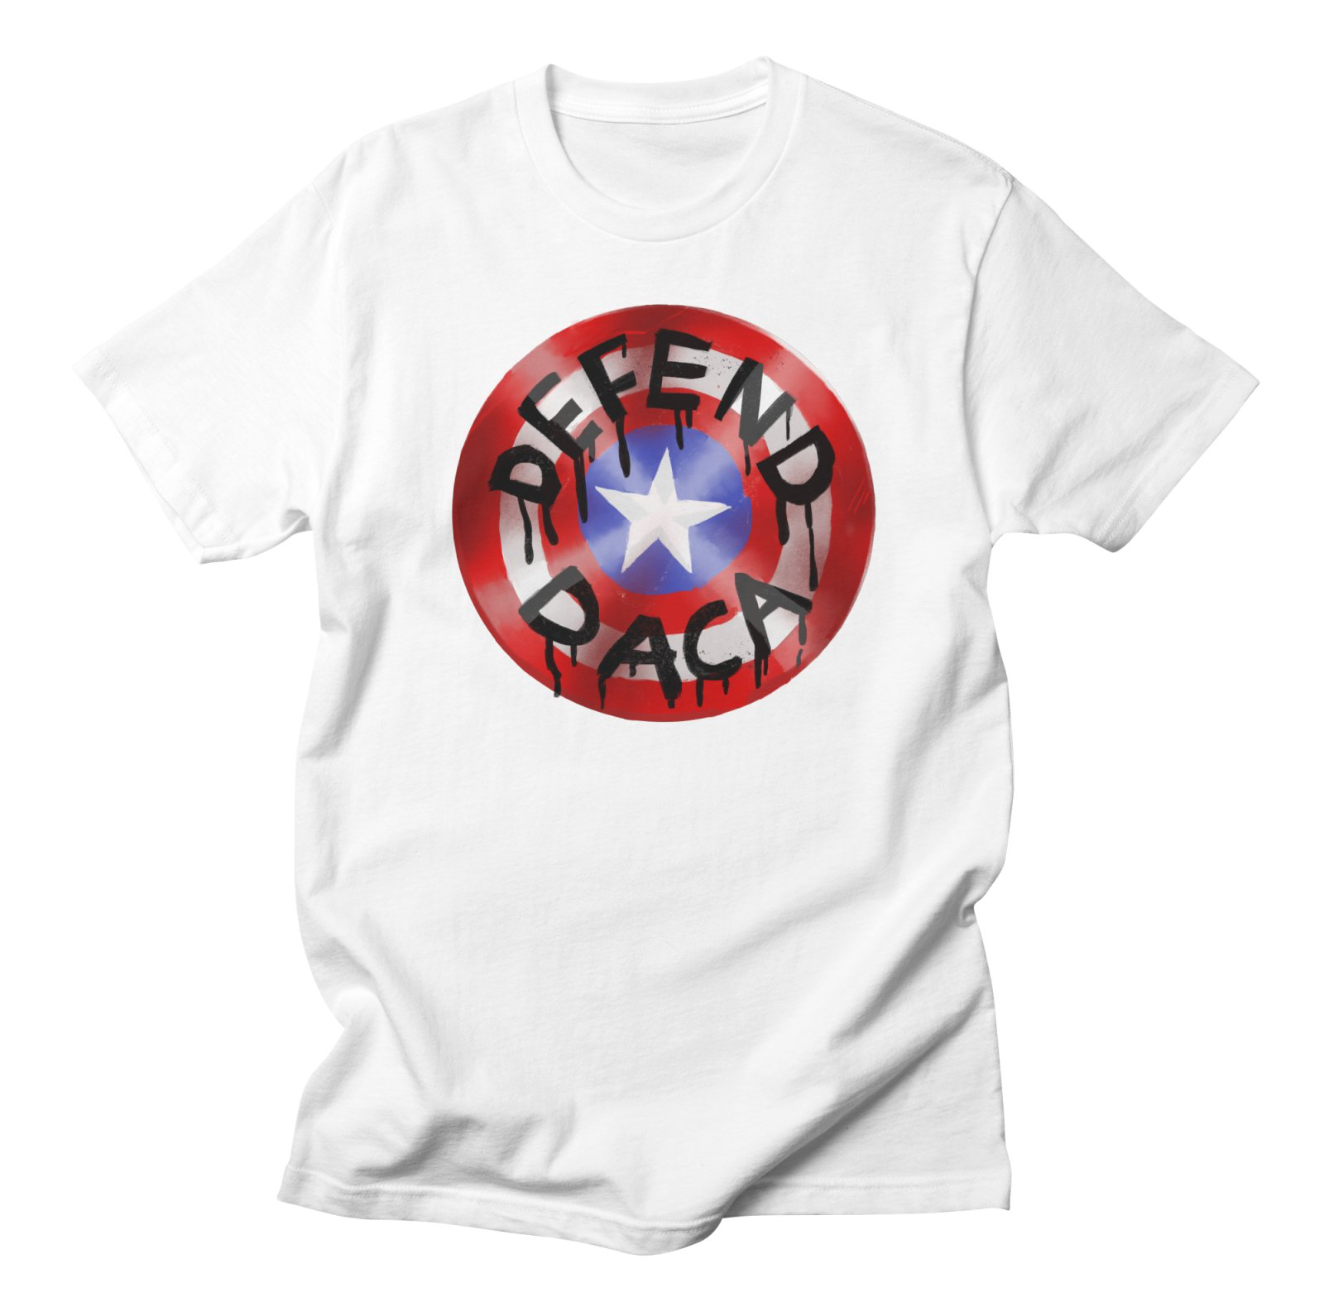 What would Captain America do? Defend DACA, of course!   https://pushbackshack.threadless.com/designs/defend-daca/womens/fitted-t-shirt?color=white   Help me raise funds for the ACLU and their current and coming battles to defend DACA!